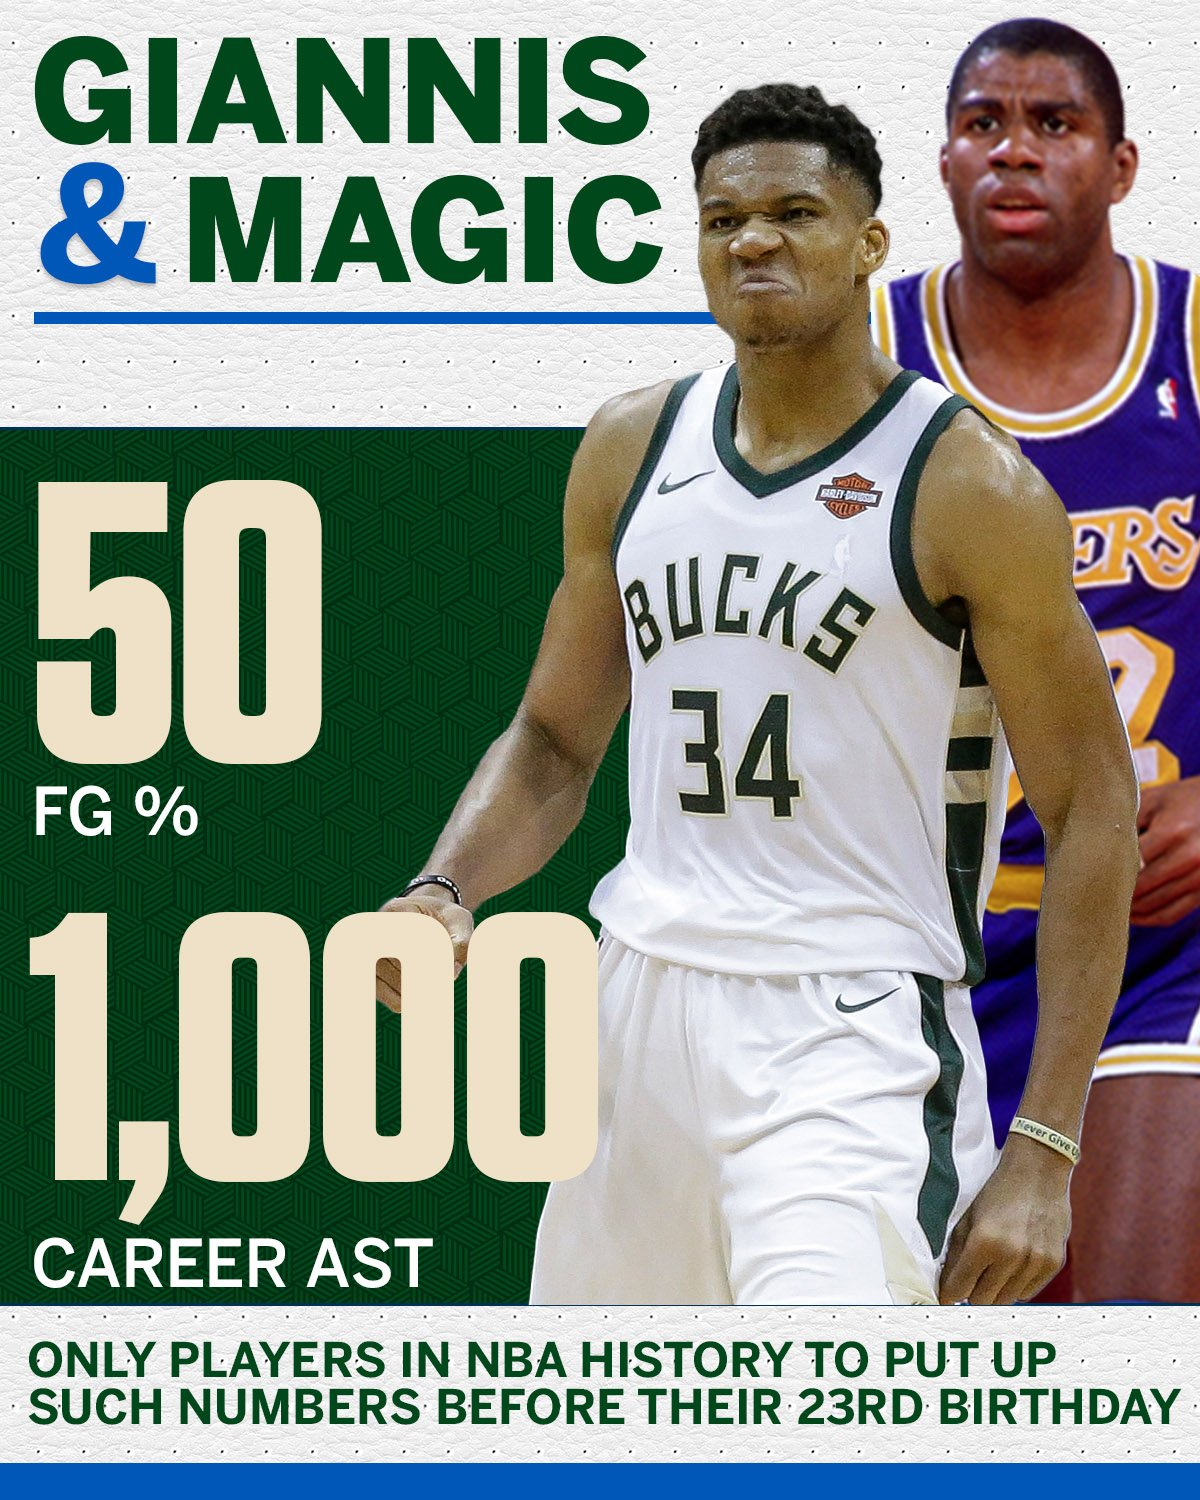 The Greek Freak has made the most of his 23 years. https://t.co/J6oVKmH0NS